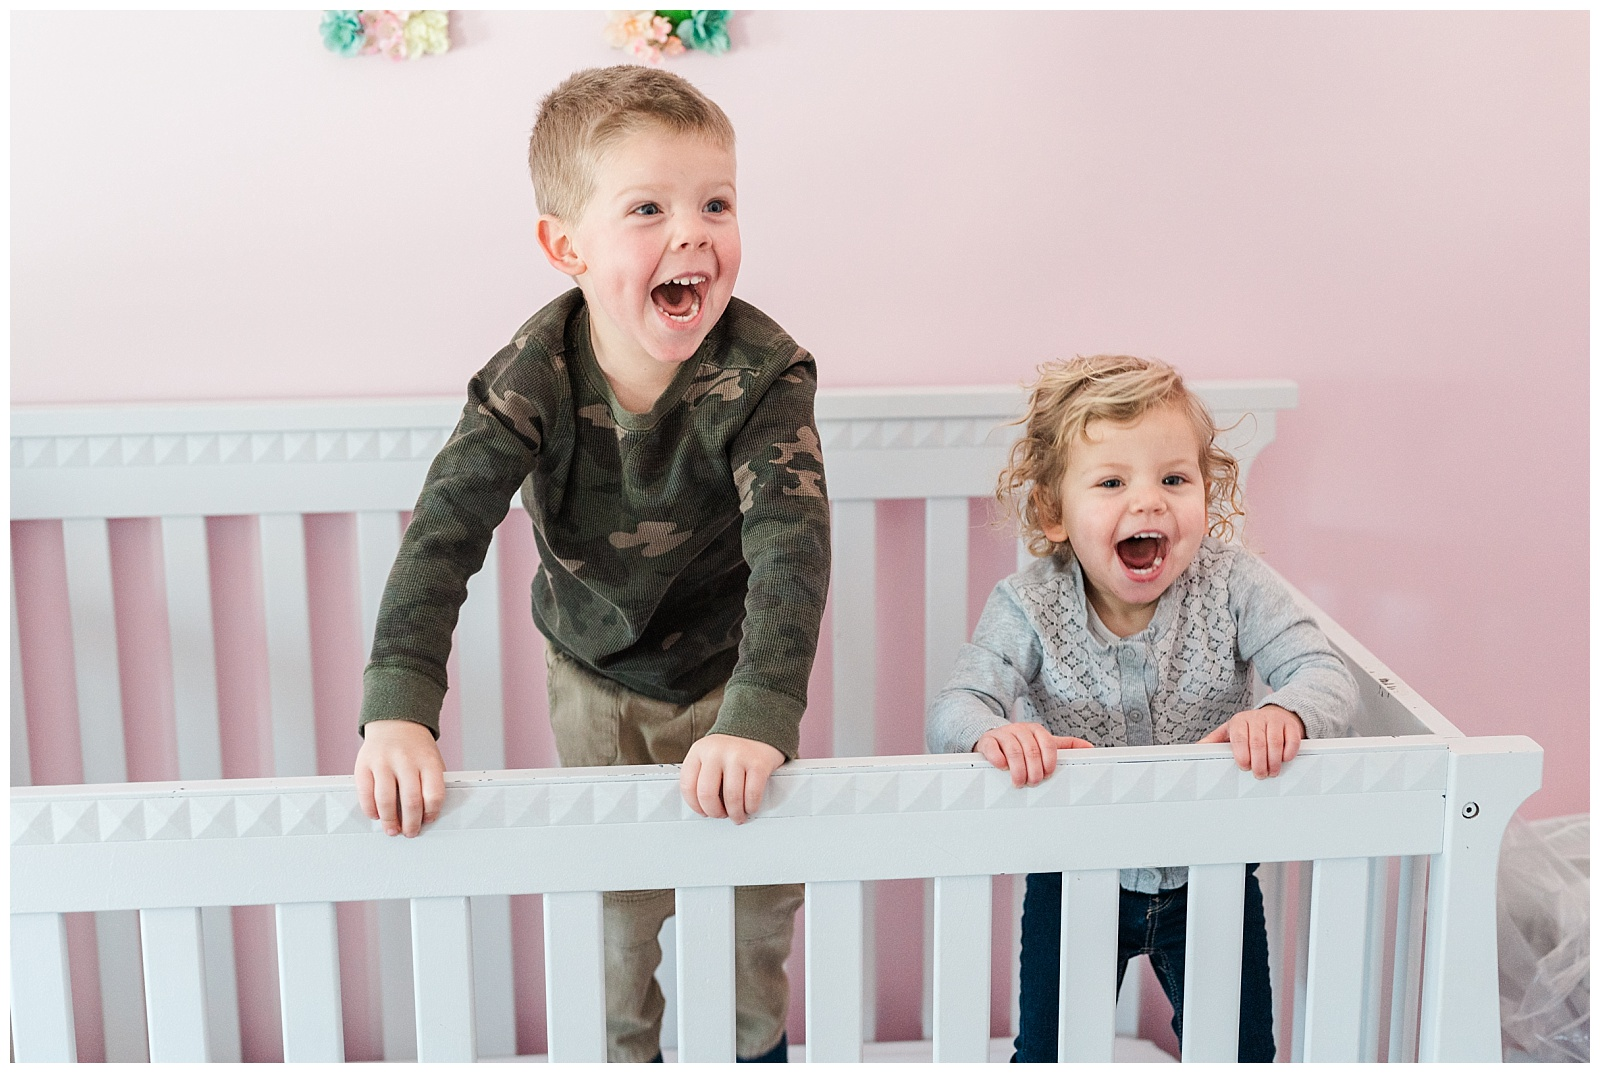 a young brother and sister jumping and laughing in the younger sister's crib